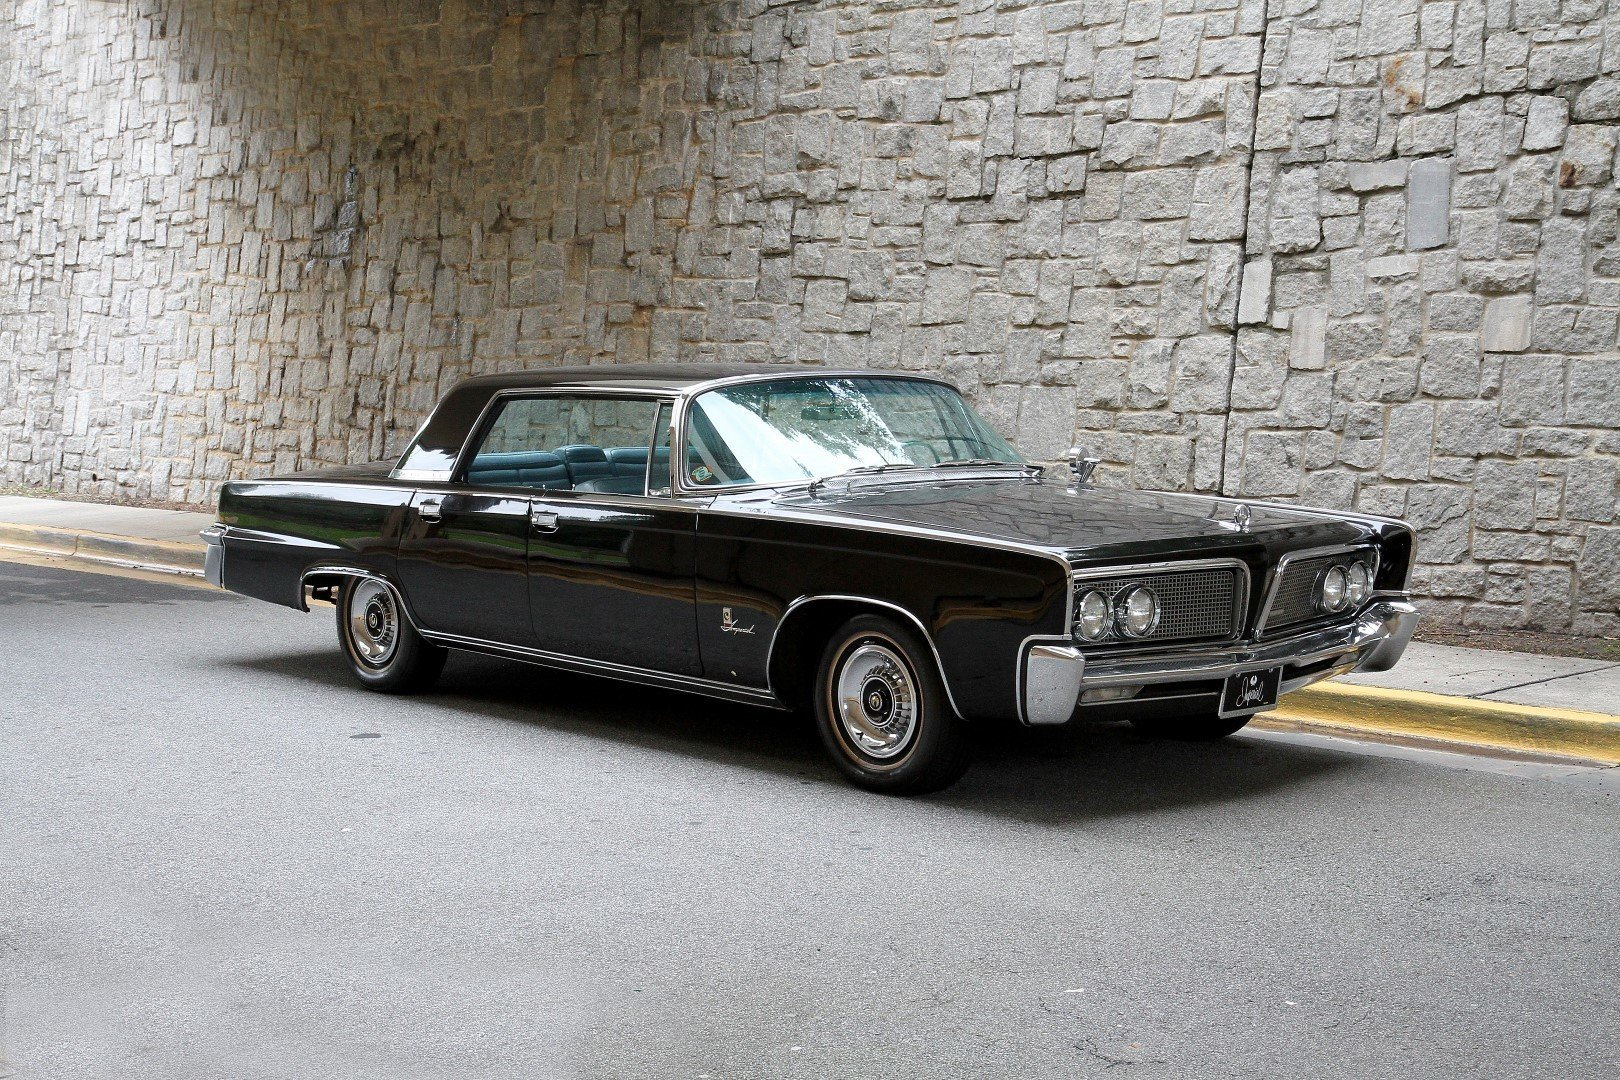 19582f hd 1964 chrysler imperial crown